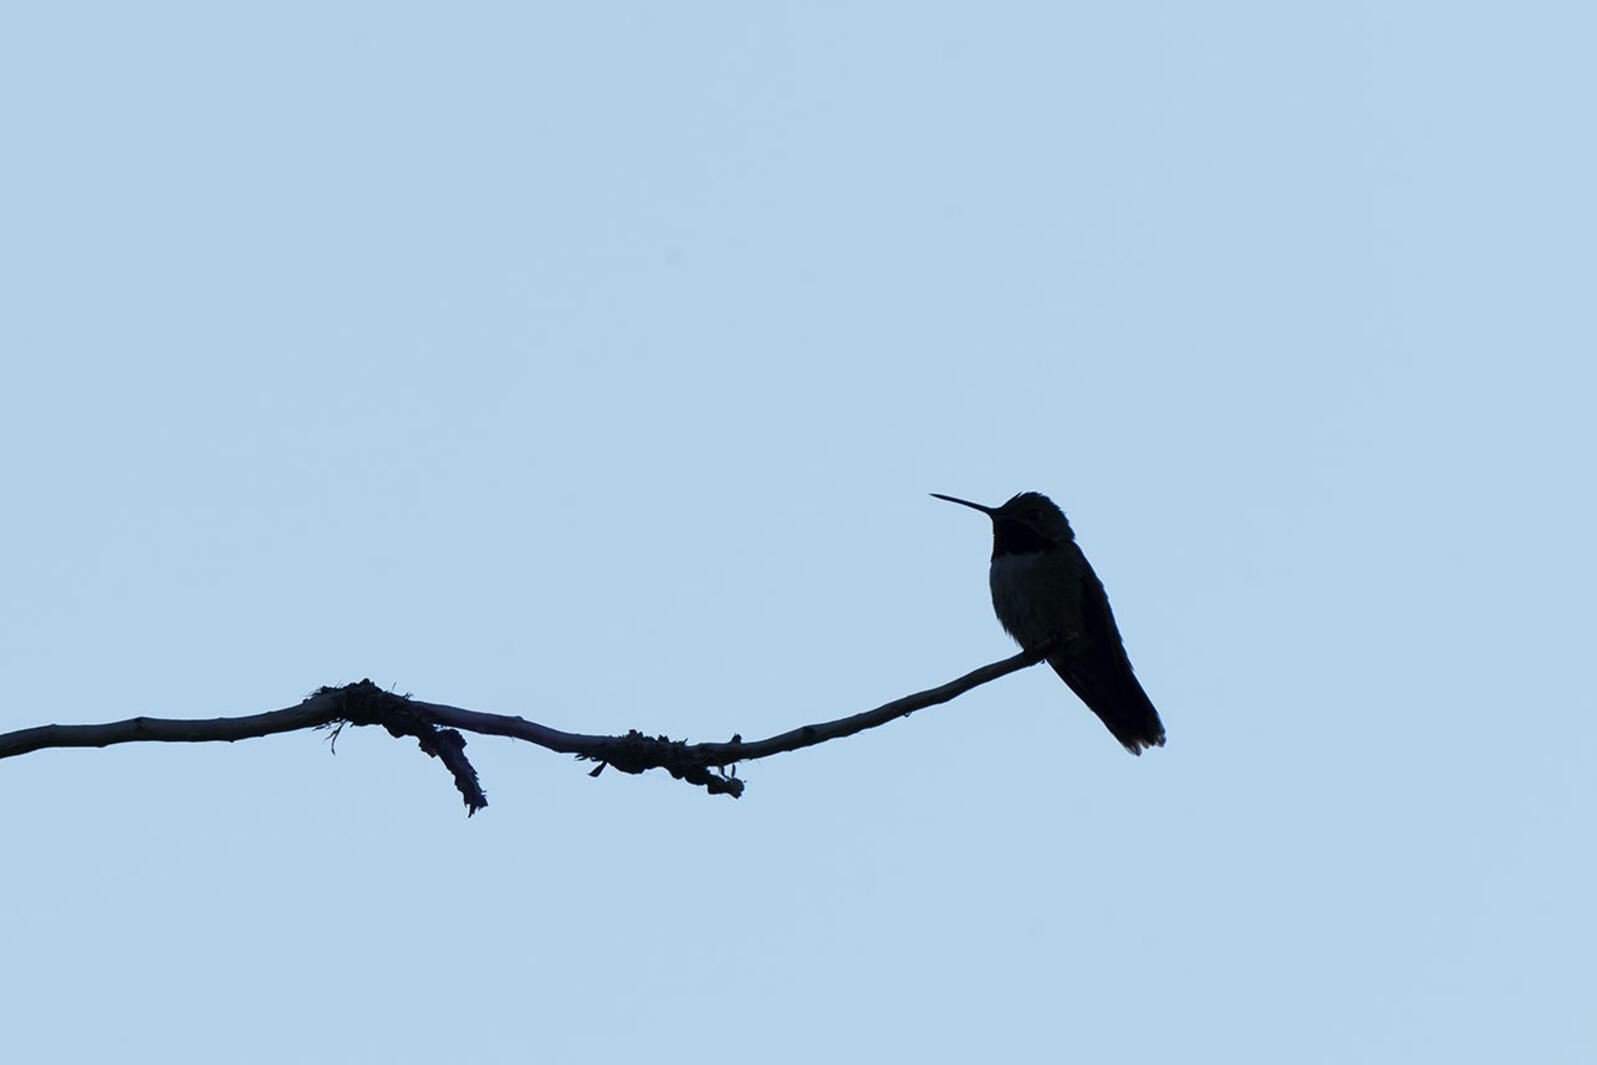 Hummingbird perched on a branch.